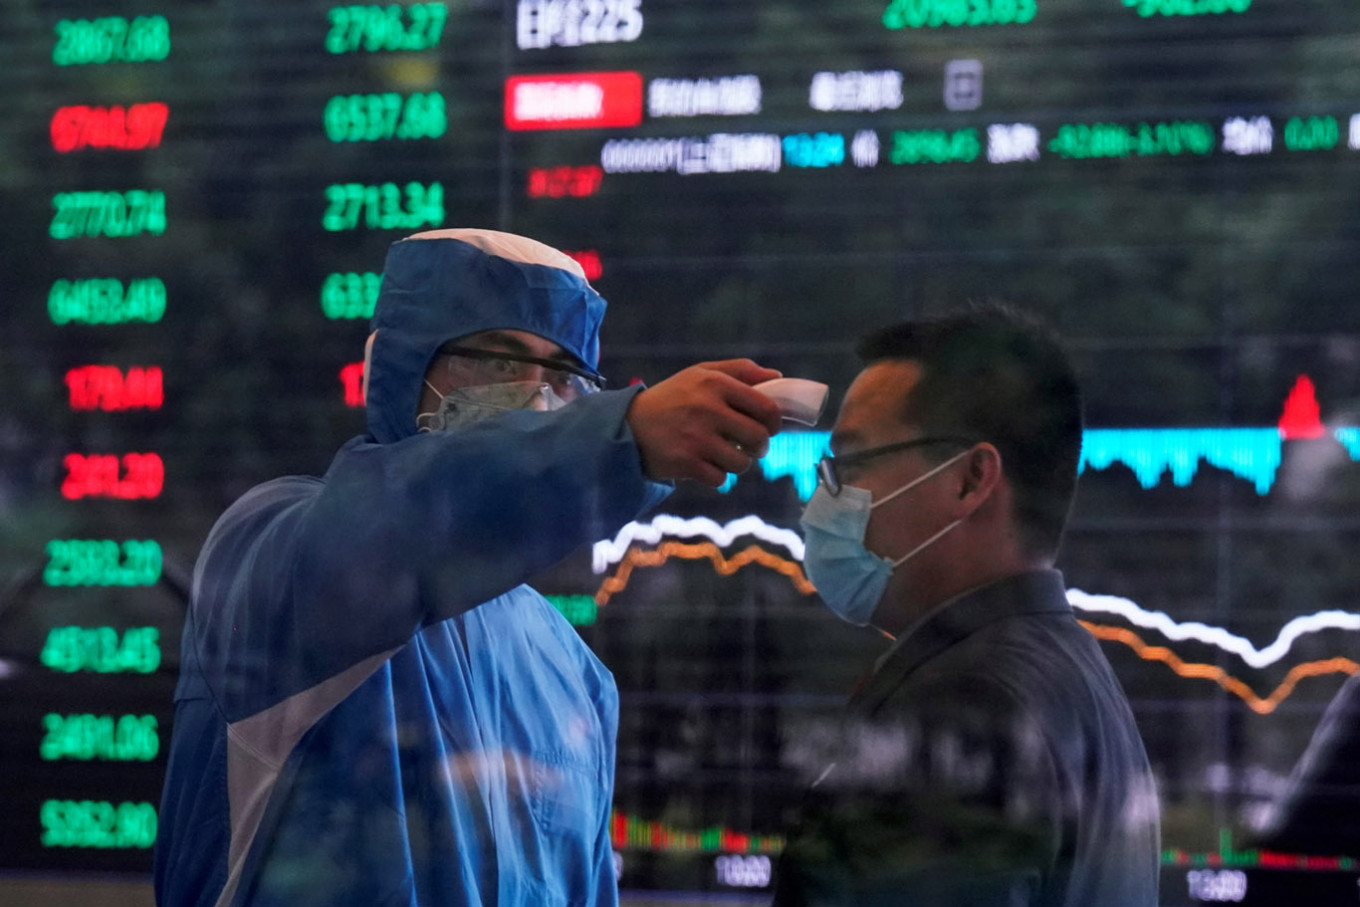 Stock markets rise by vaccine hope, surging infections fan fear